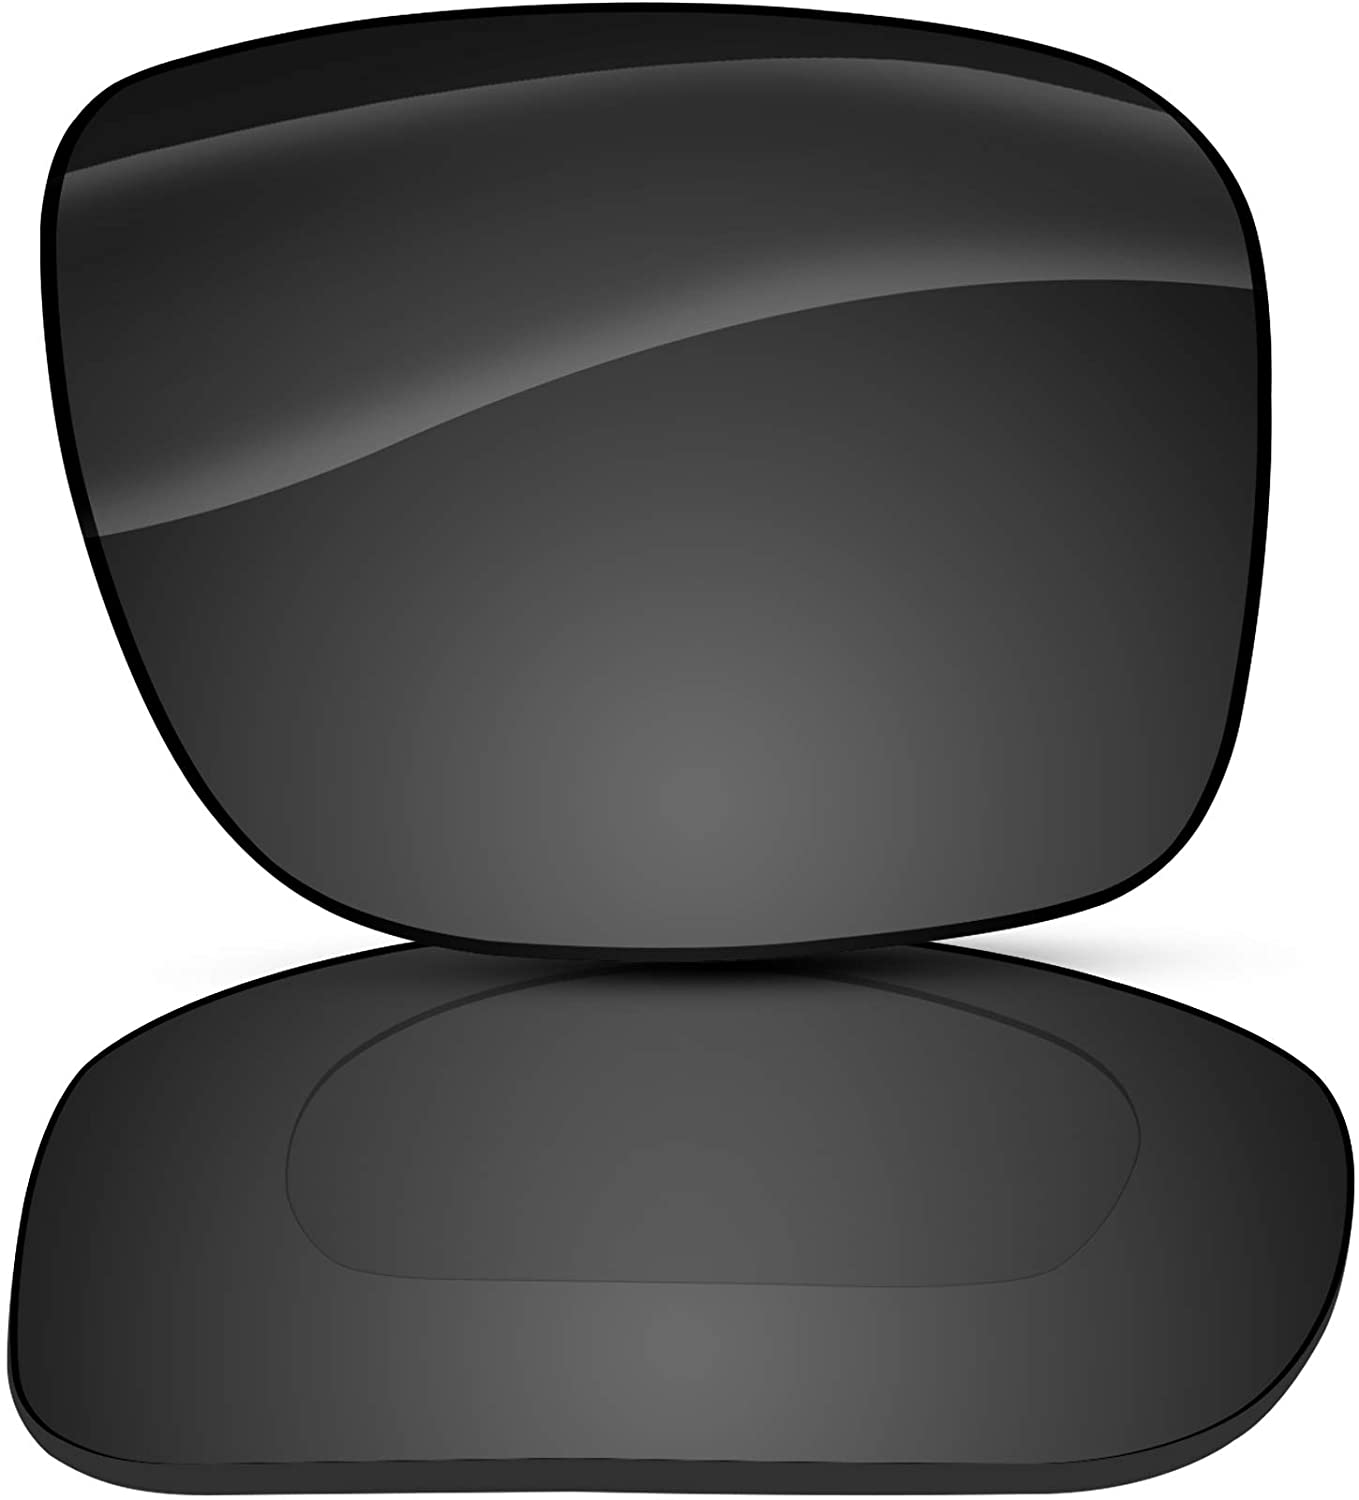 COOLENS Polarized Replacement Lenses for Oakley Holbrook Sunglasses UV Protection